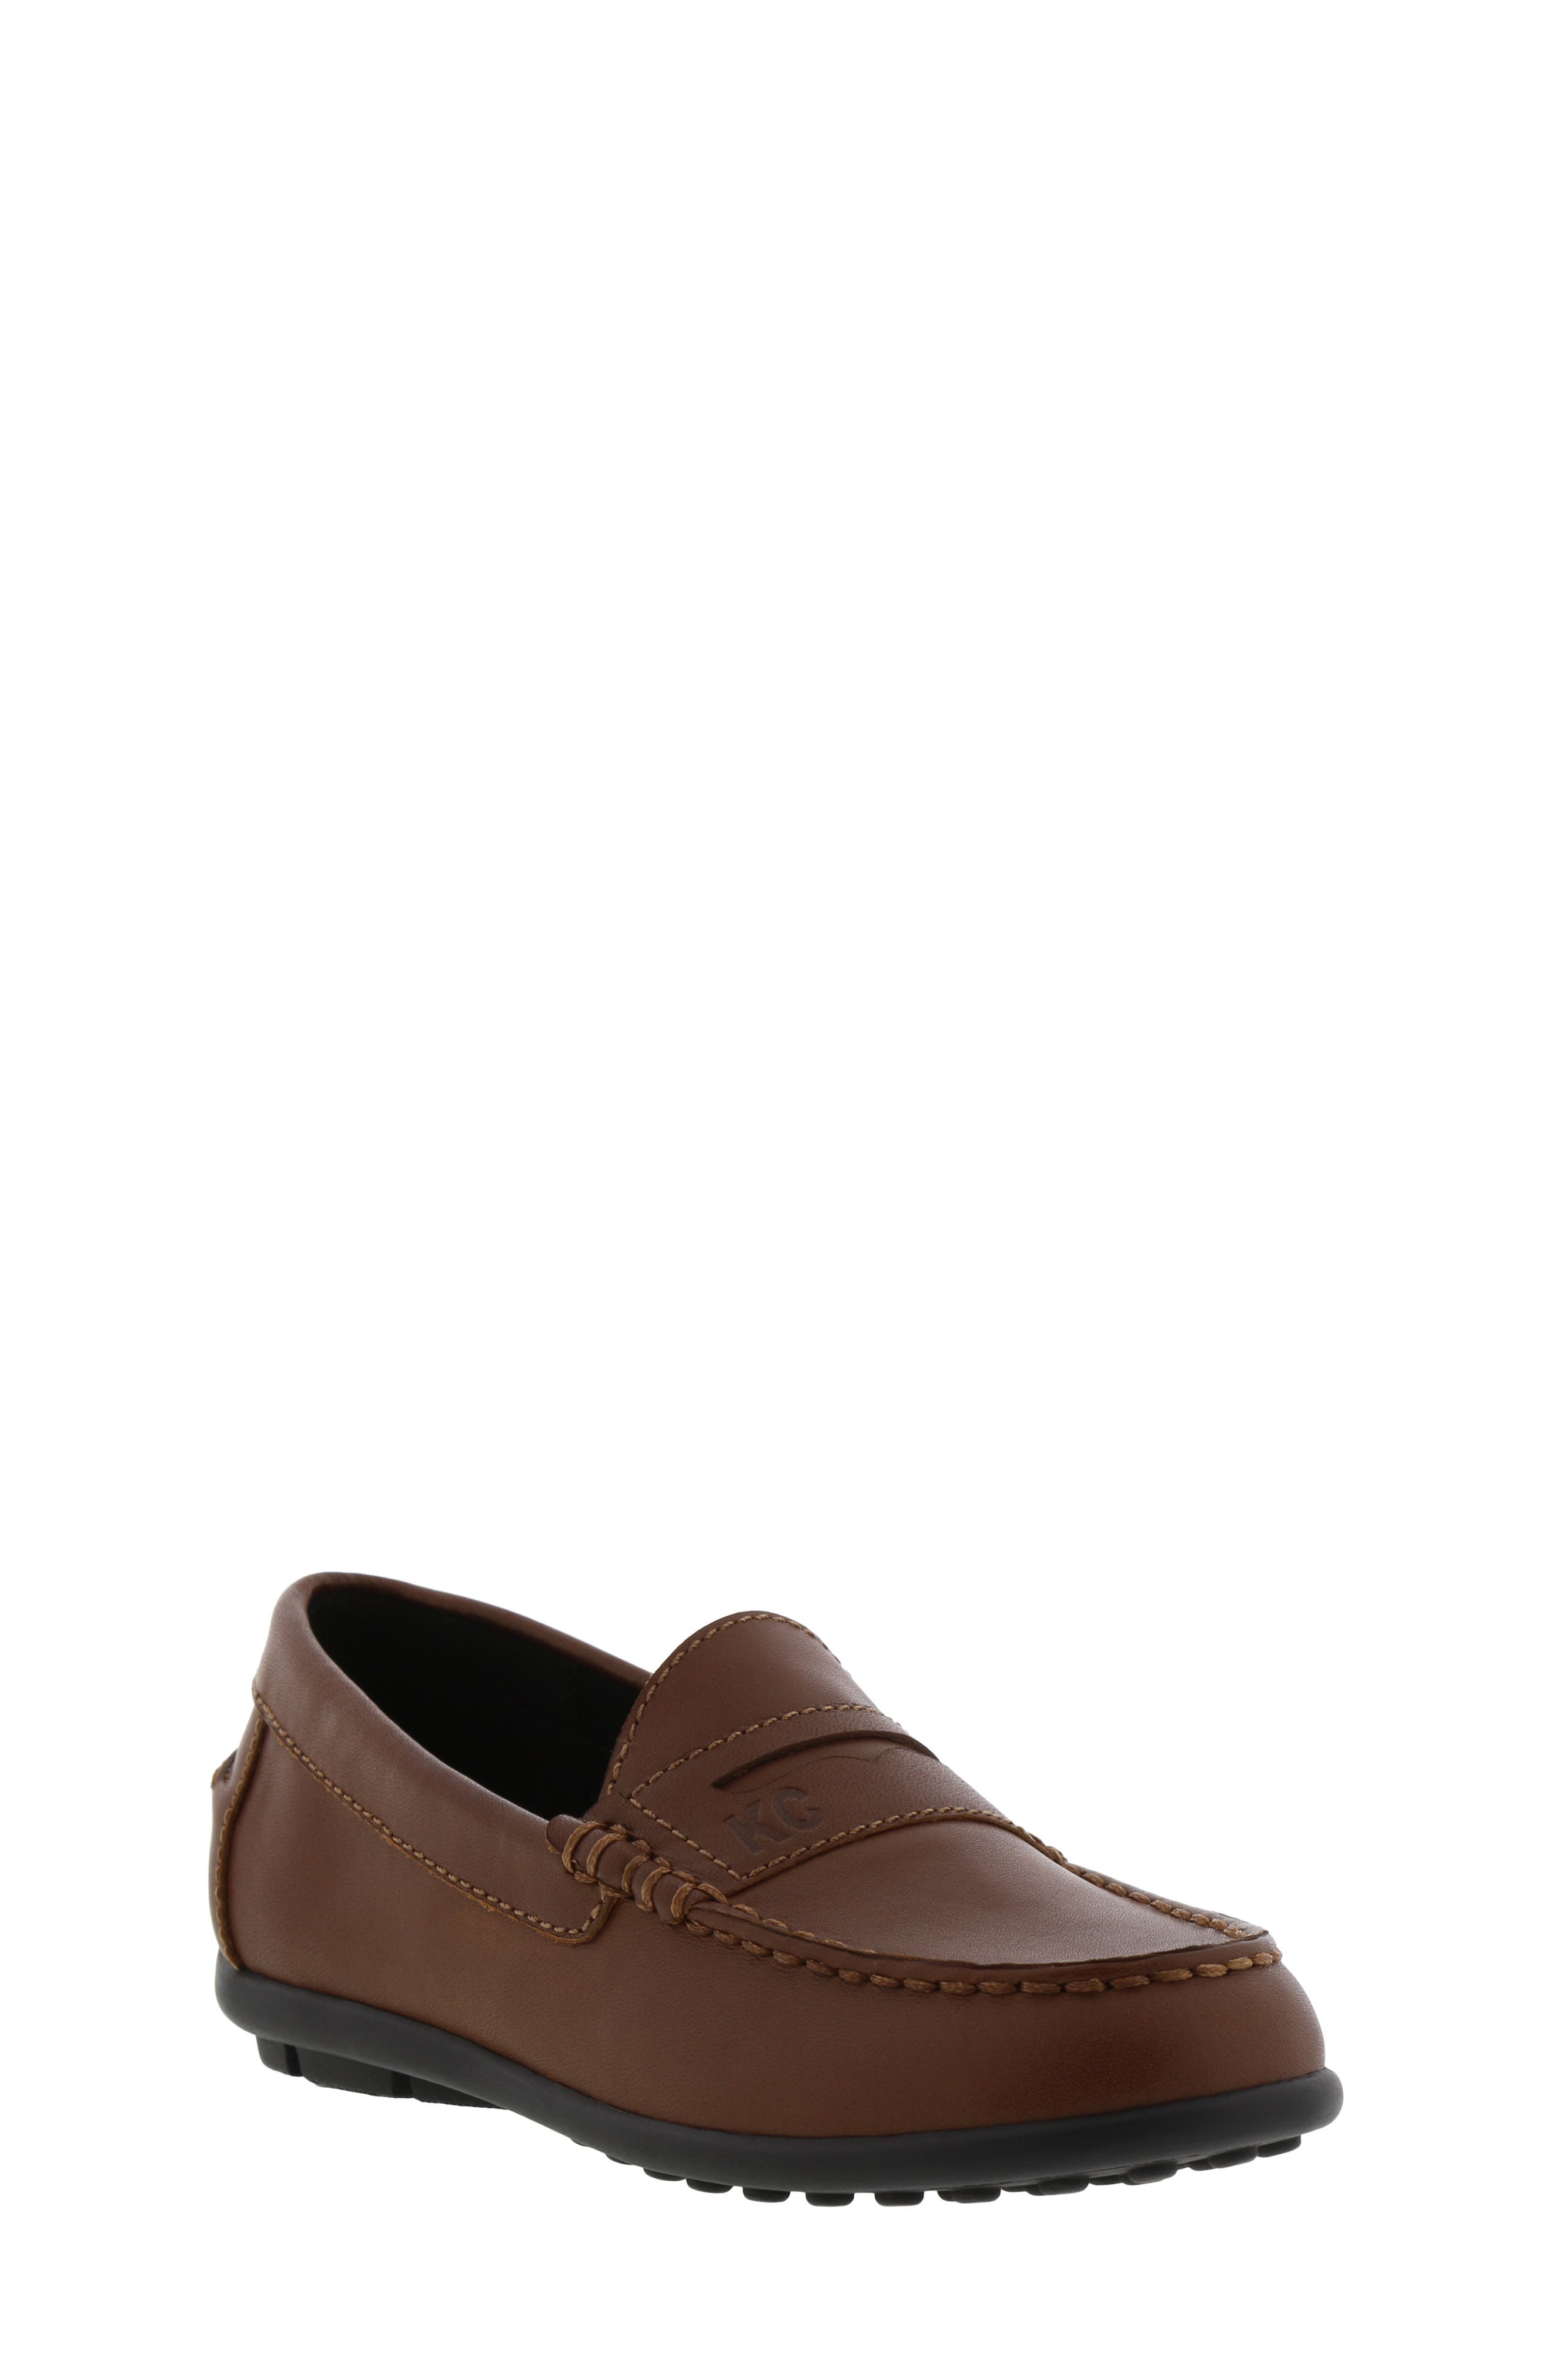 REACTION KENNETH COLE Helio Gear Loafer, Main, color, COGNAC